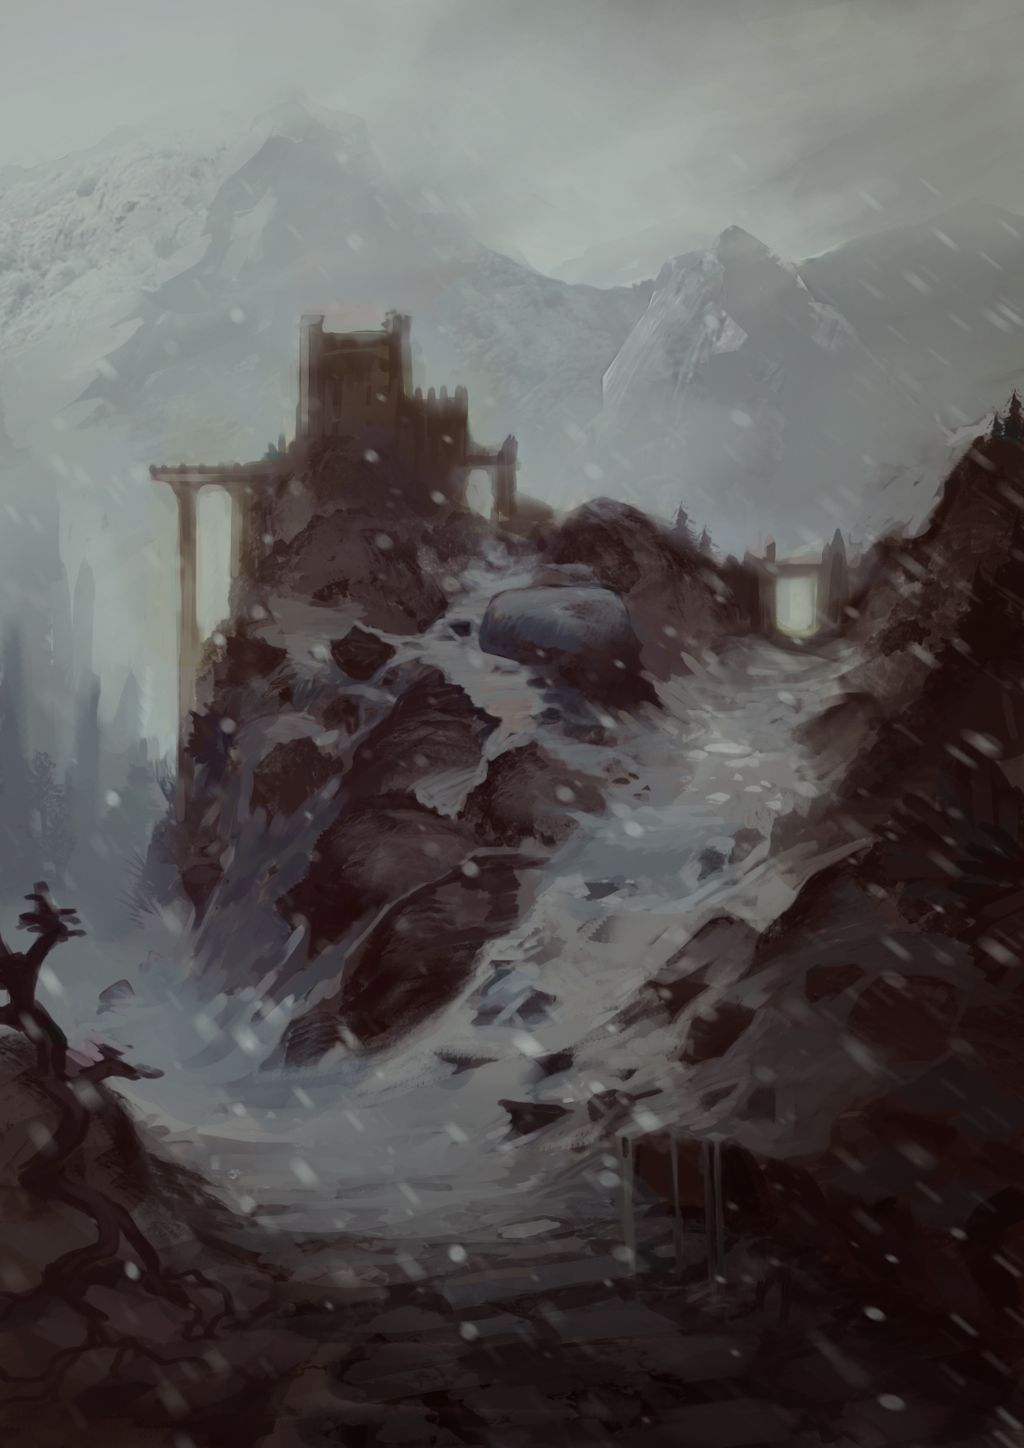 Games Design UCLan Blogspot Topical digital painting with sample